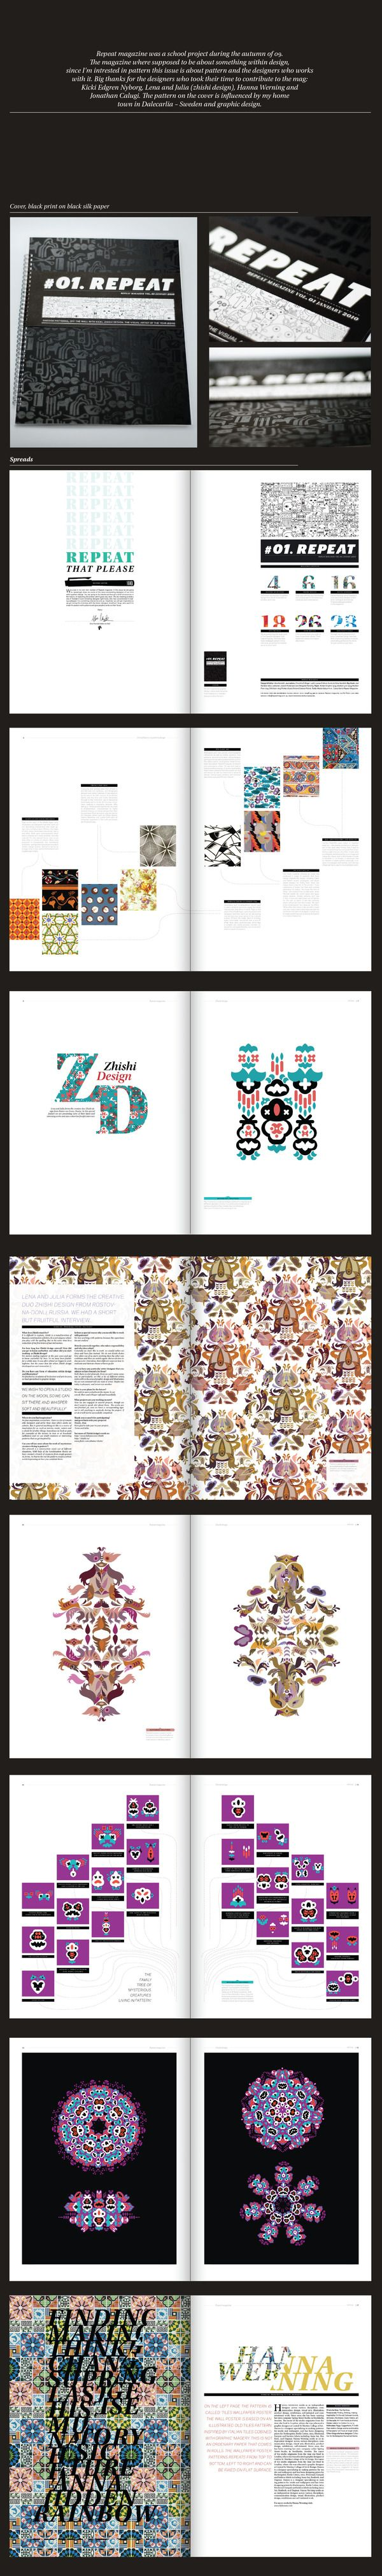 Repeat magazine by Moa Nordahl, via Behance